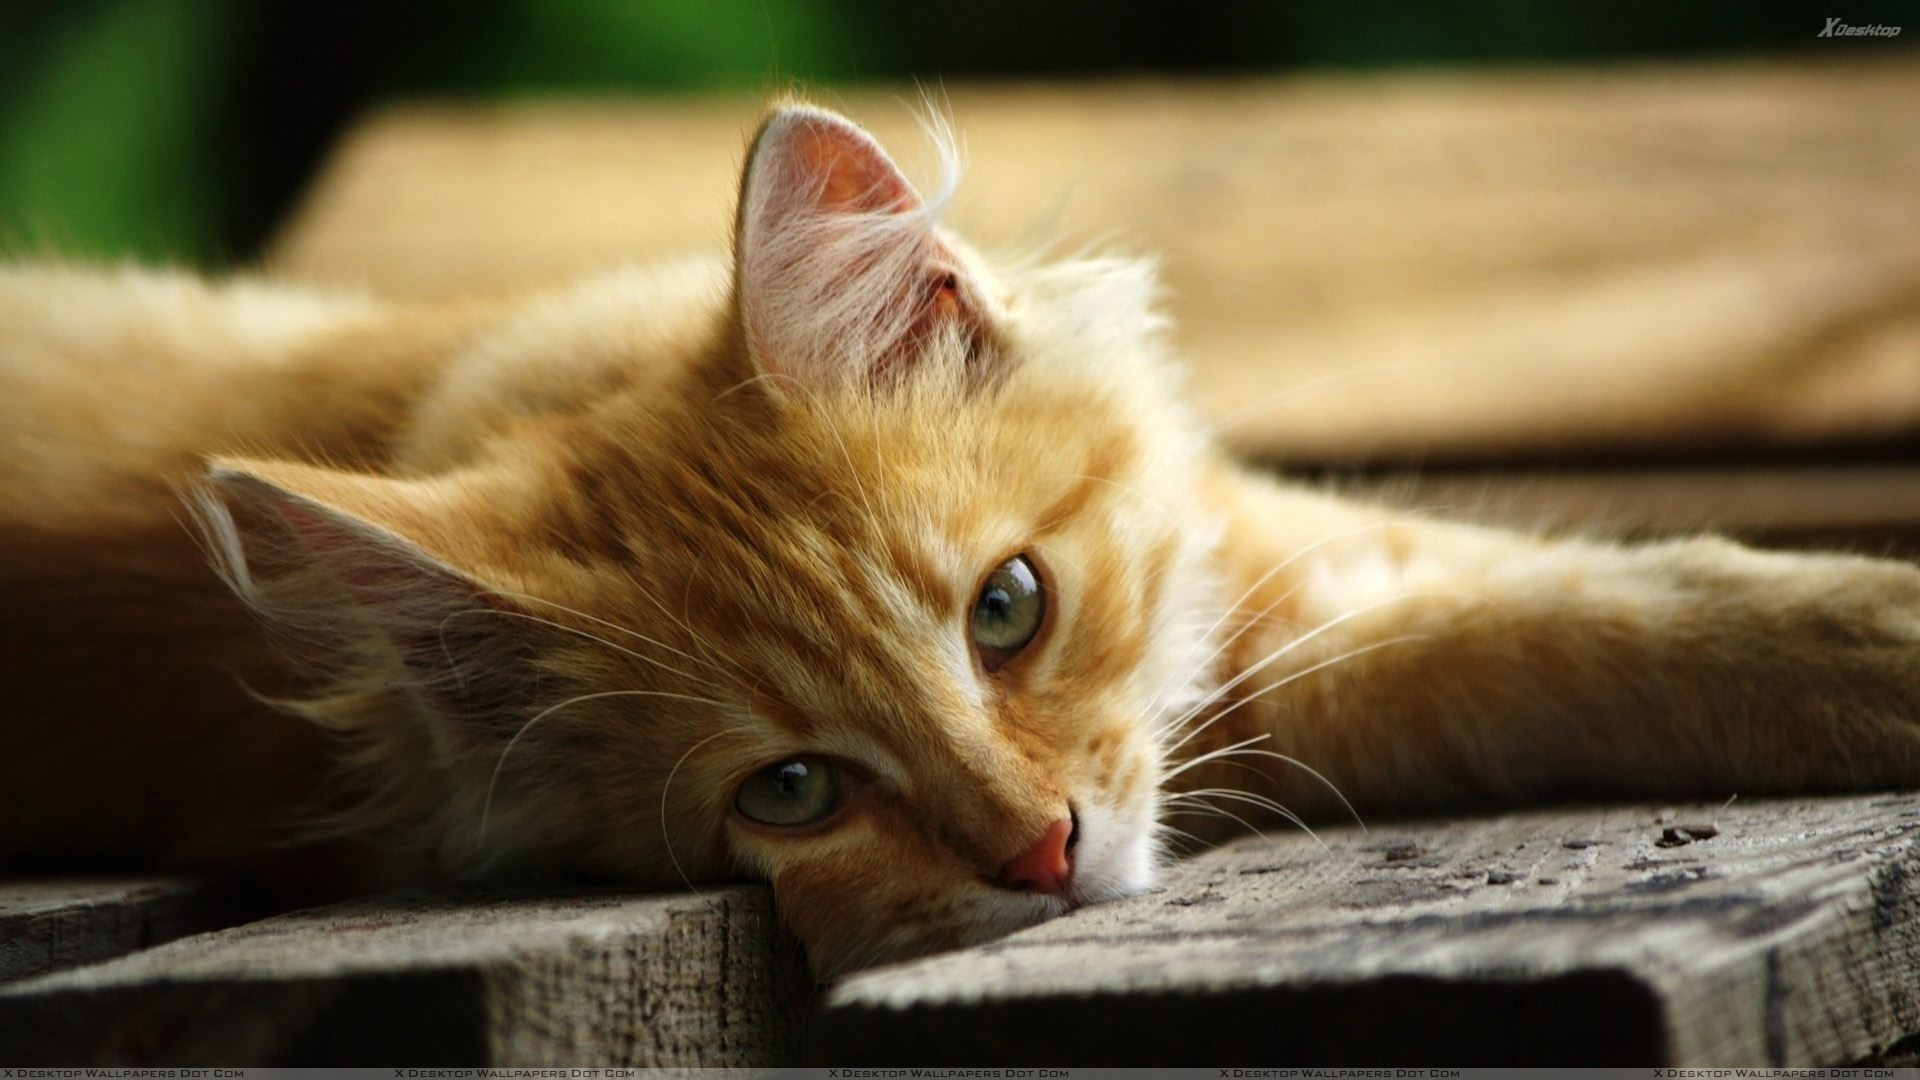 Hd Cat Wallpapers 1920x1080 69 Images: HD Cat Wallpapers 1920x1080